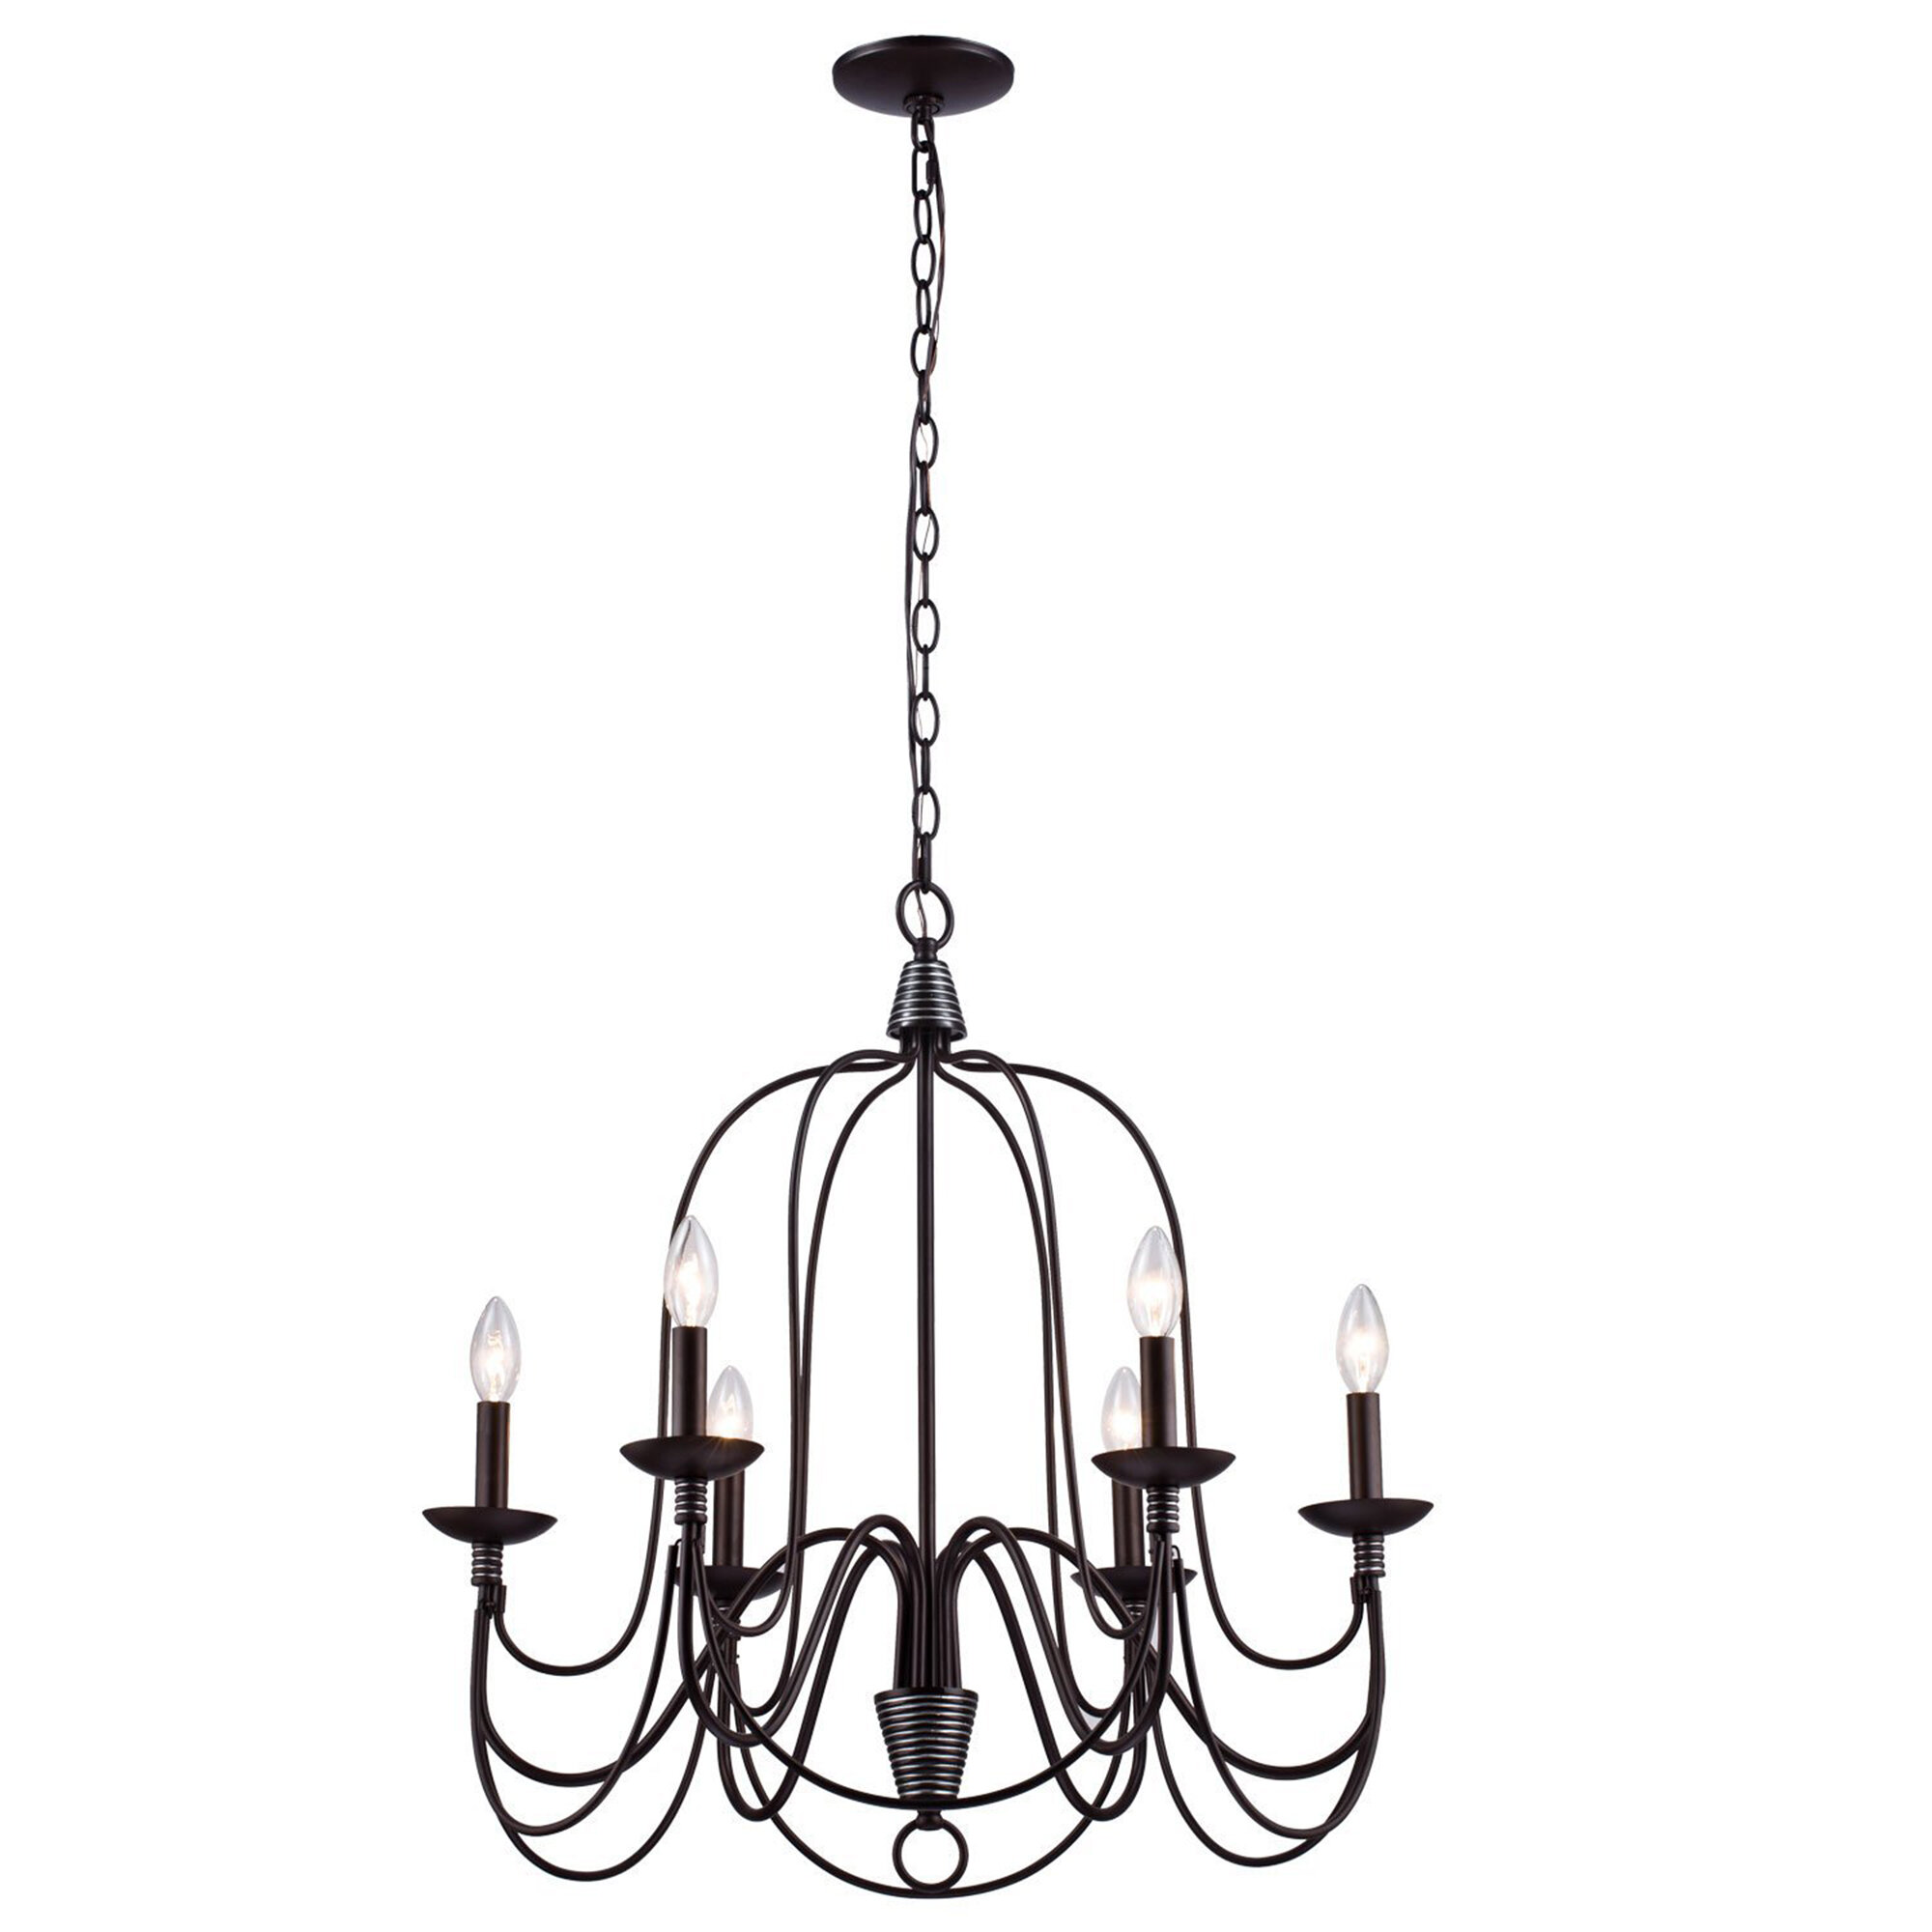 17 Stories Vahe 6 Light Candle Style Chandelier & Reviews